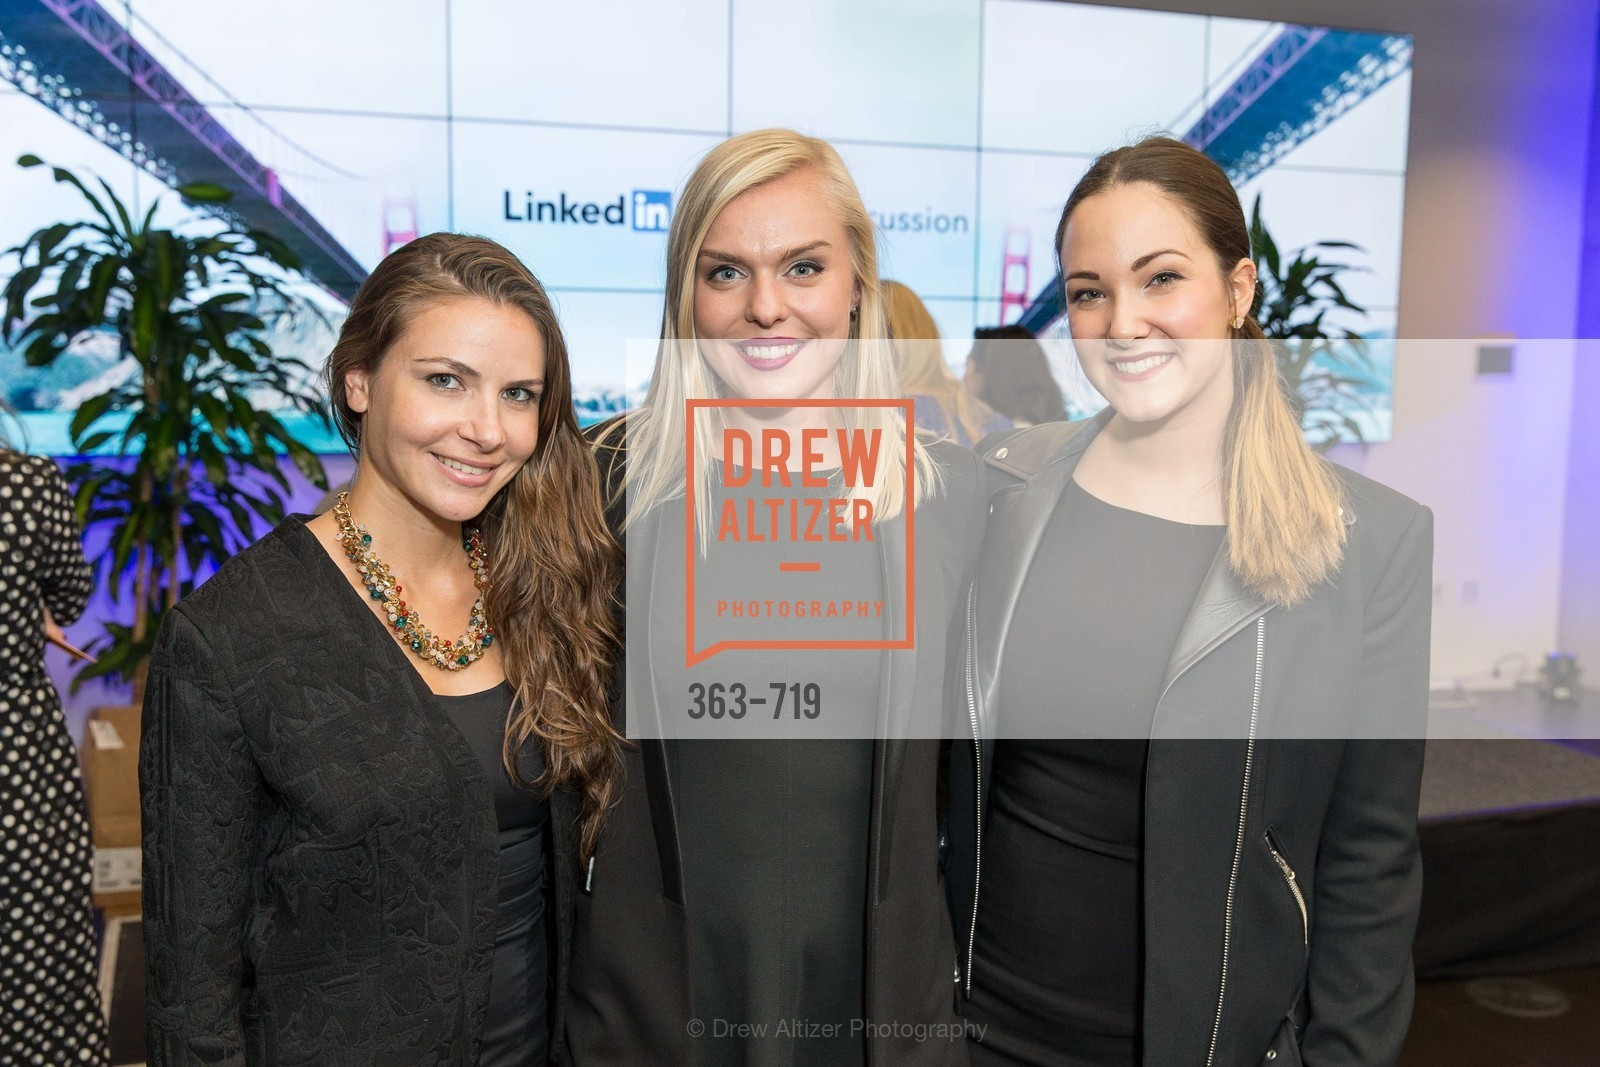 Keily Hernandez, Jenny Johansson, Sarah Left, THE LINKEDIN Discussion Series featuring Jack and Suzy Welch with LinkedIn Executive Editor Dan Roth, US, May 11th, 2015,Drew Altizer, Drew Altizer Photography, full-service agency, private events, San Francisco photographer, photographer california